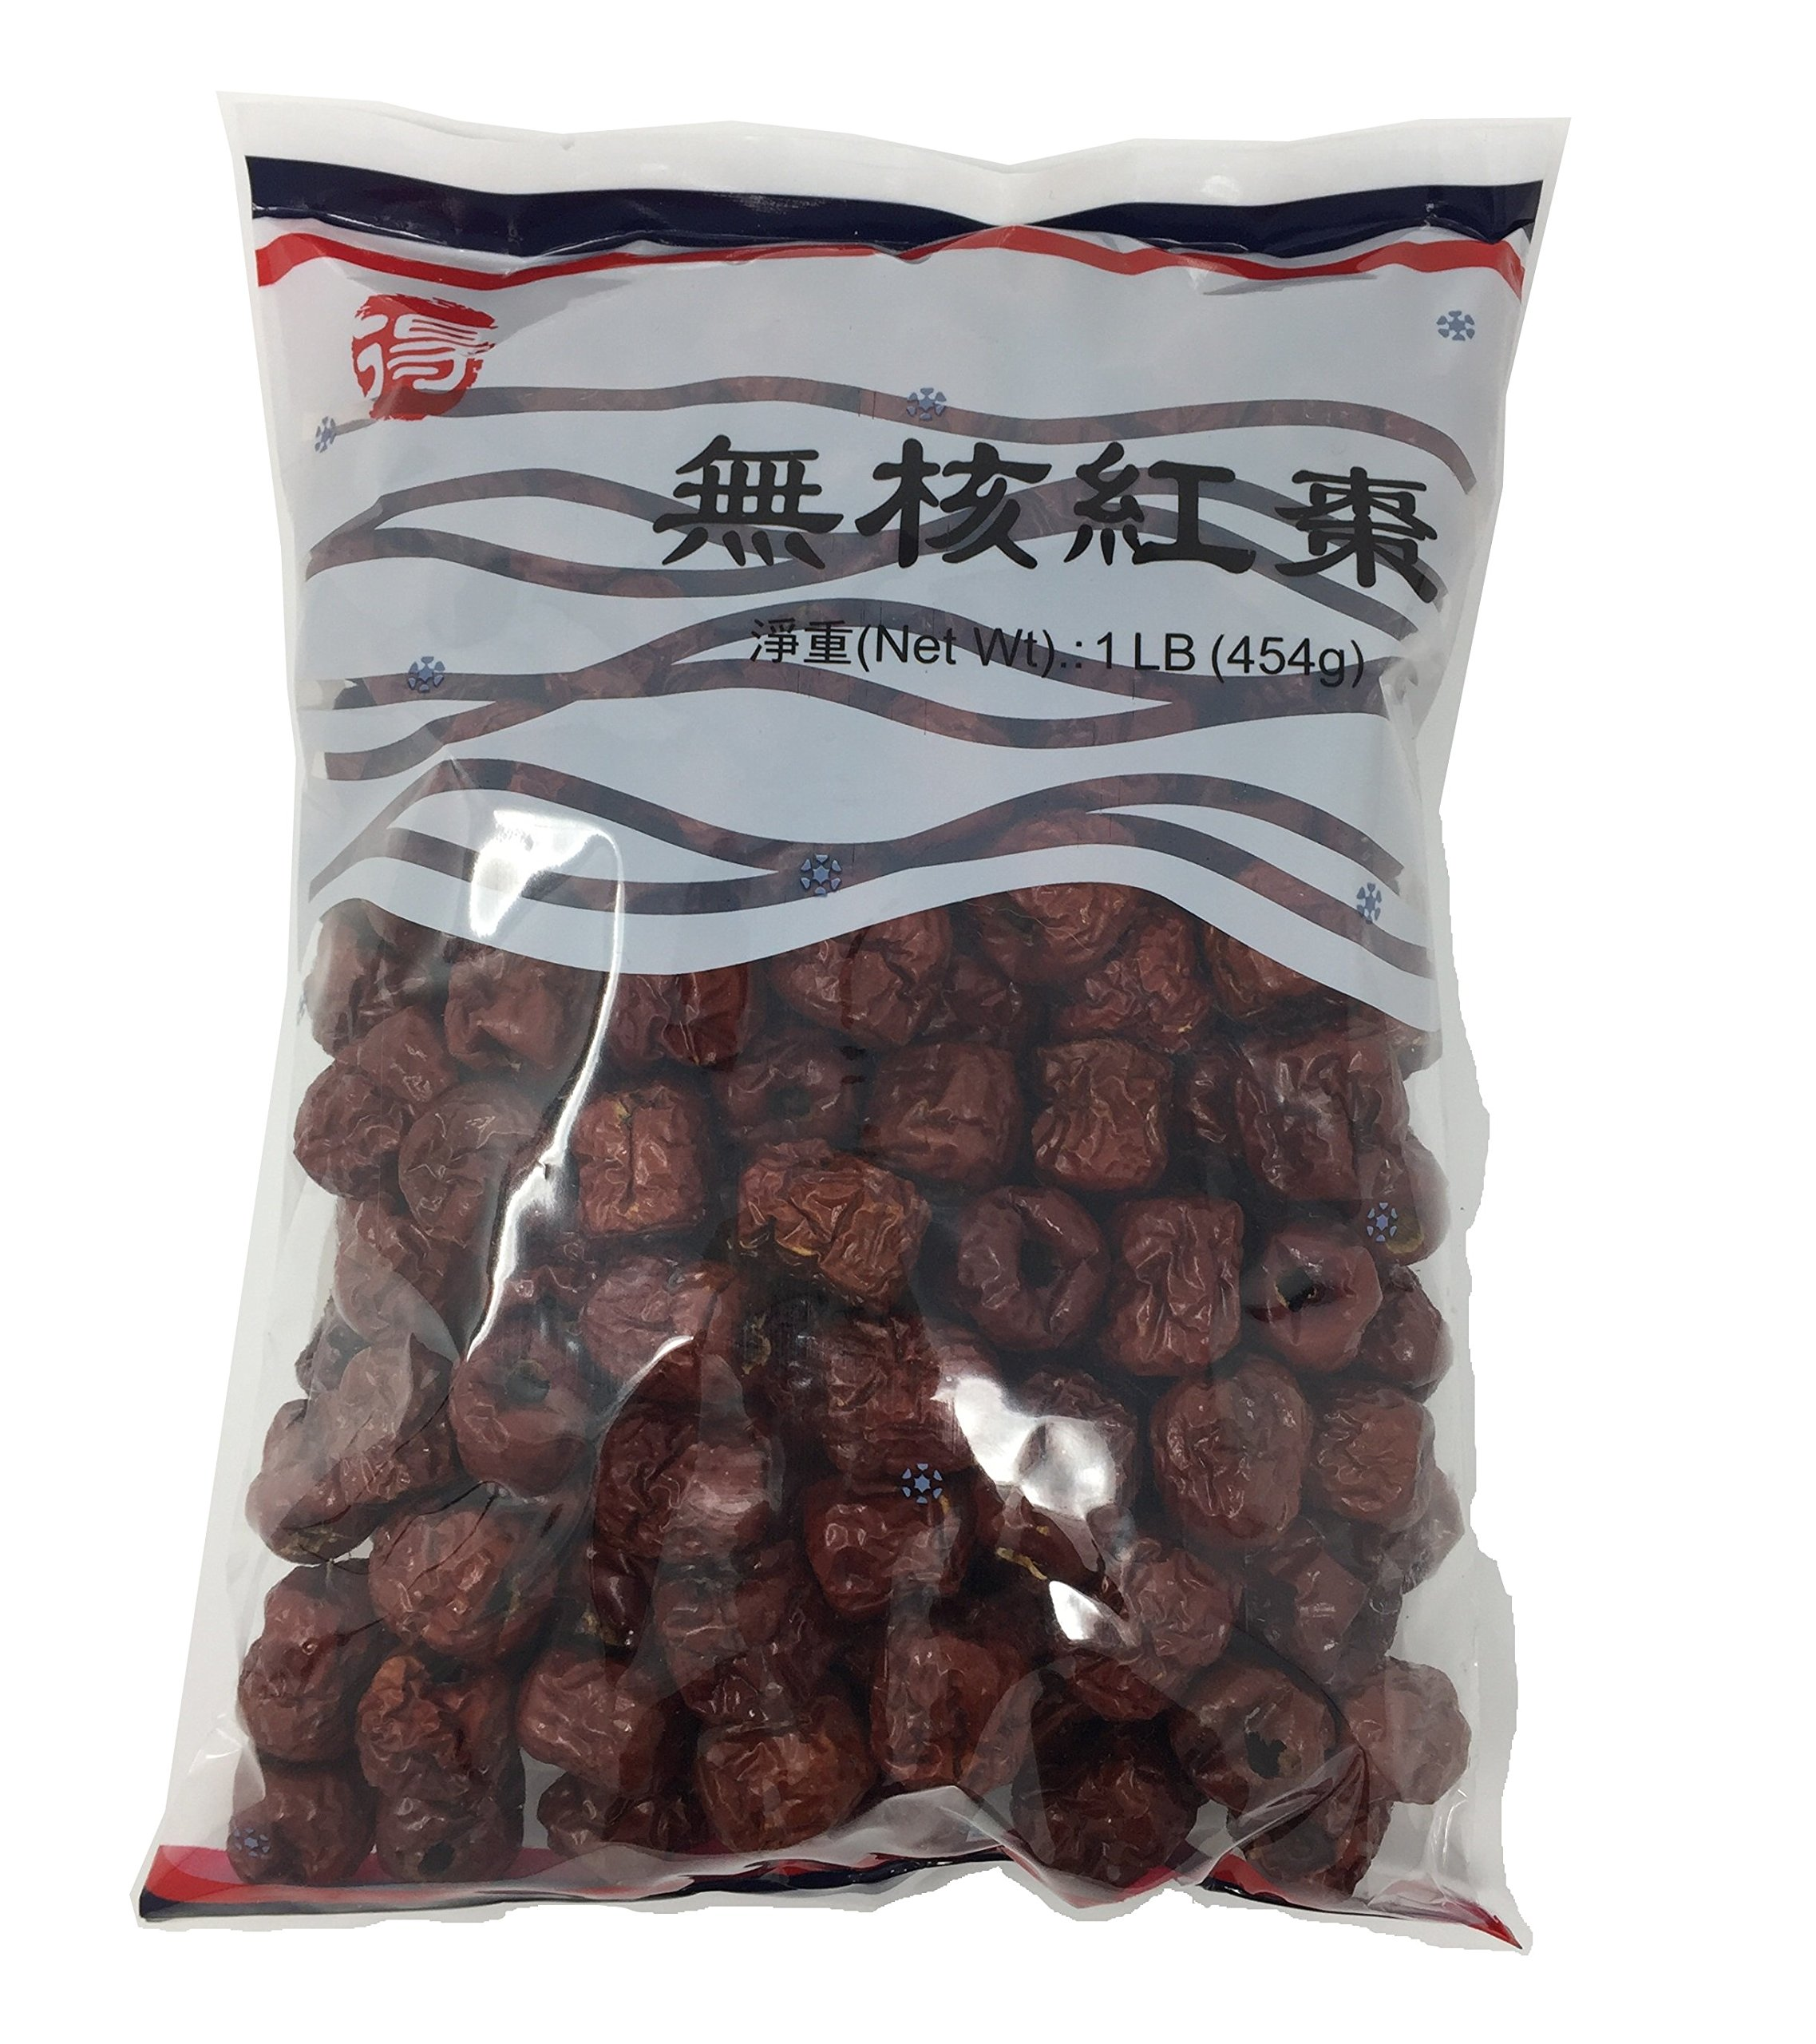 Dried Chinese Red Dates (Jujube) Hong Zao Herbal Healthy Foods (16 Oz)